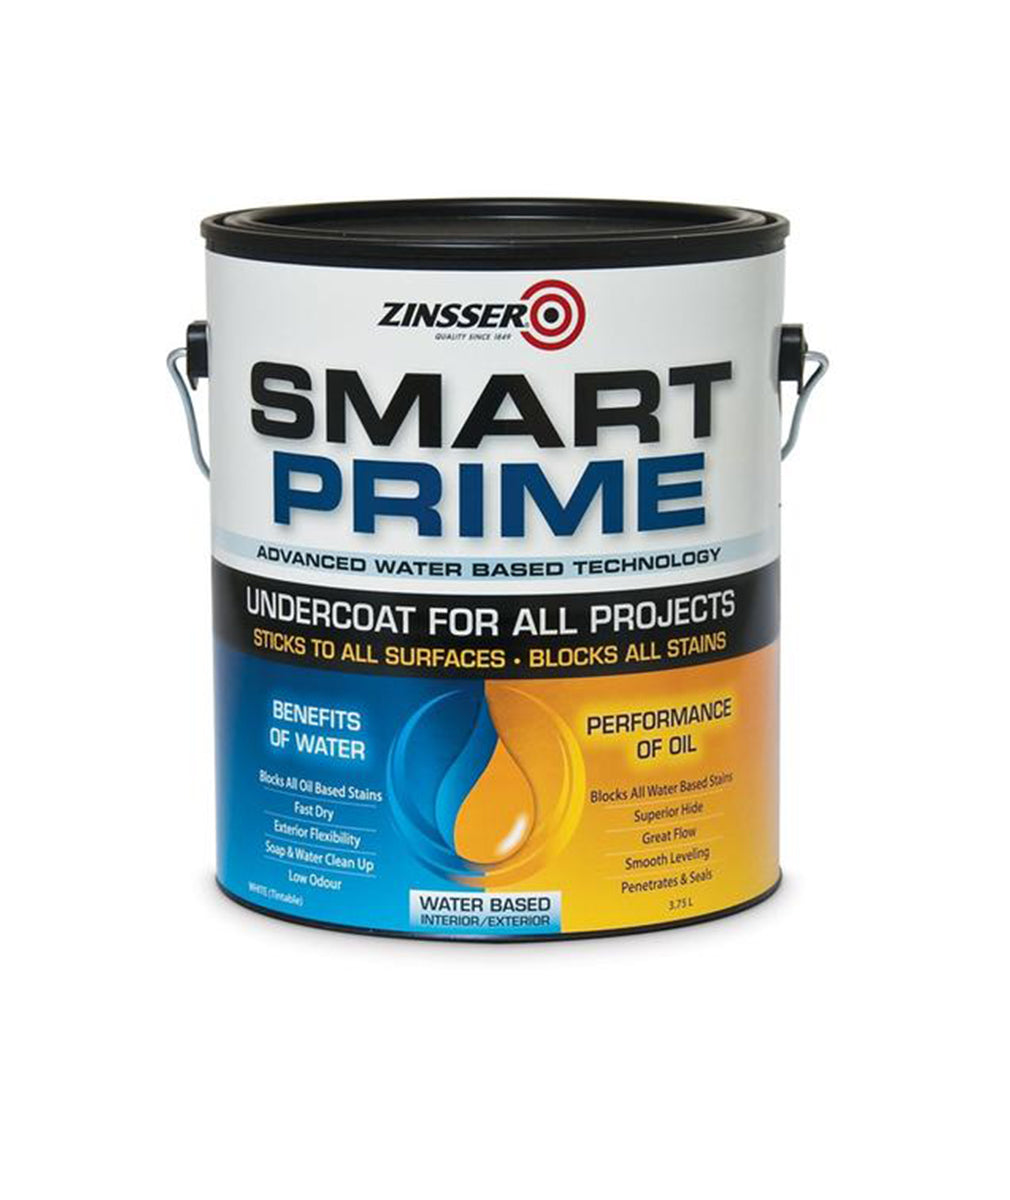 Zinsser Smart Prime White Universal Primer Gallon, available at Kelly-Moore Paints for Contractors.